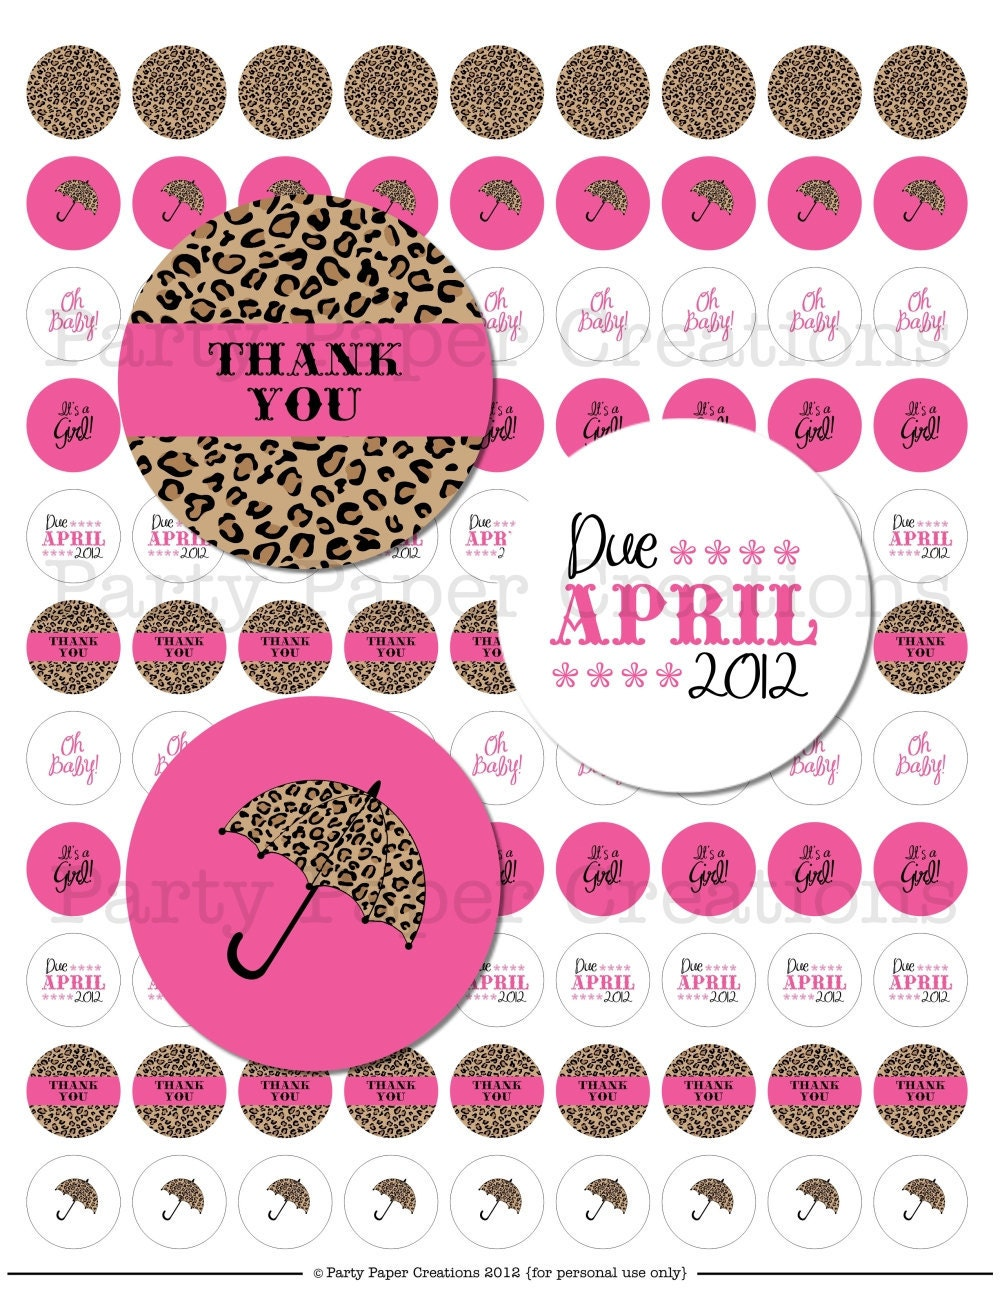 Save baby shower decorations leopard to get e-mail alerts and updates on your eBay Feed. + Safari Girl Pink Zebra Leopard Animal Print Baby Shower Hanging Fan Decorations Brand New.